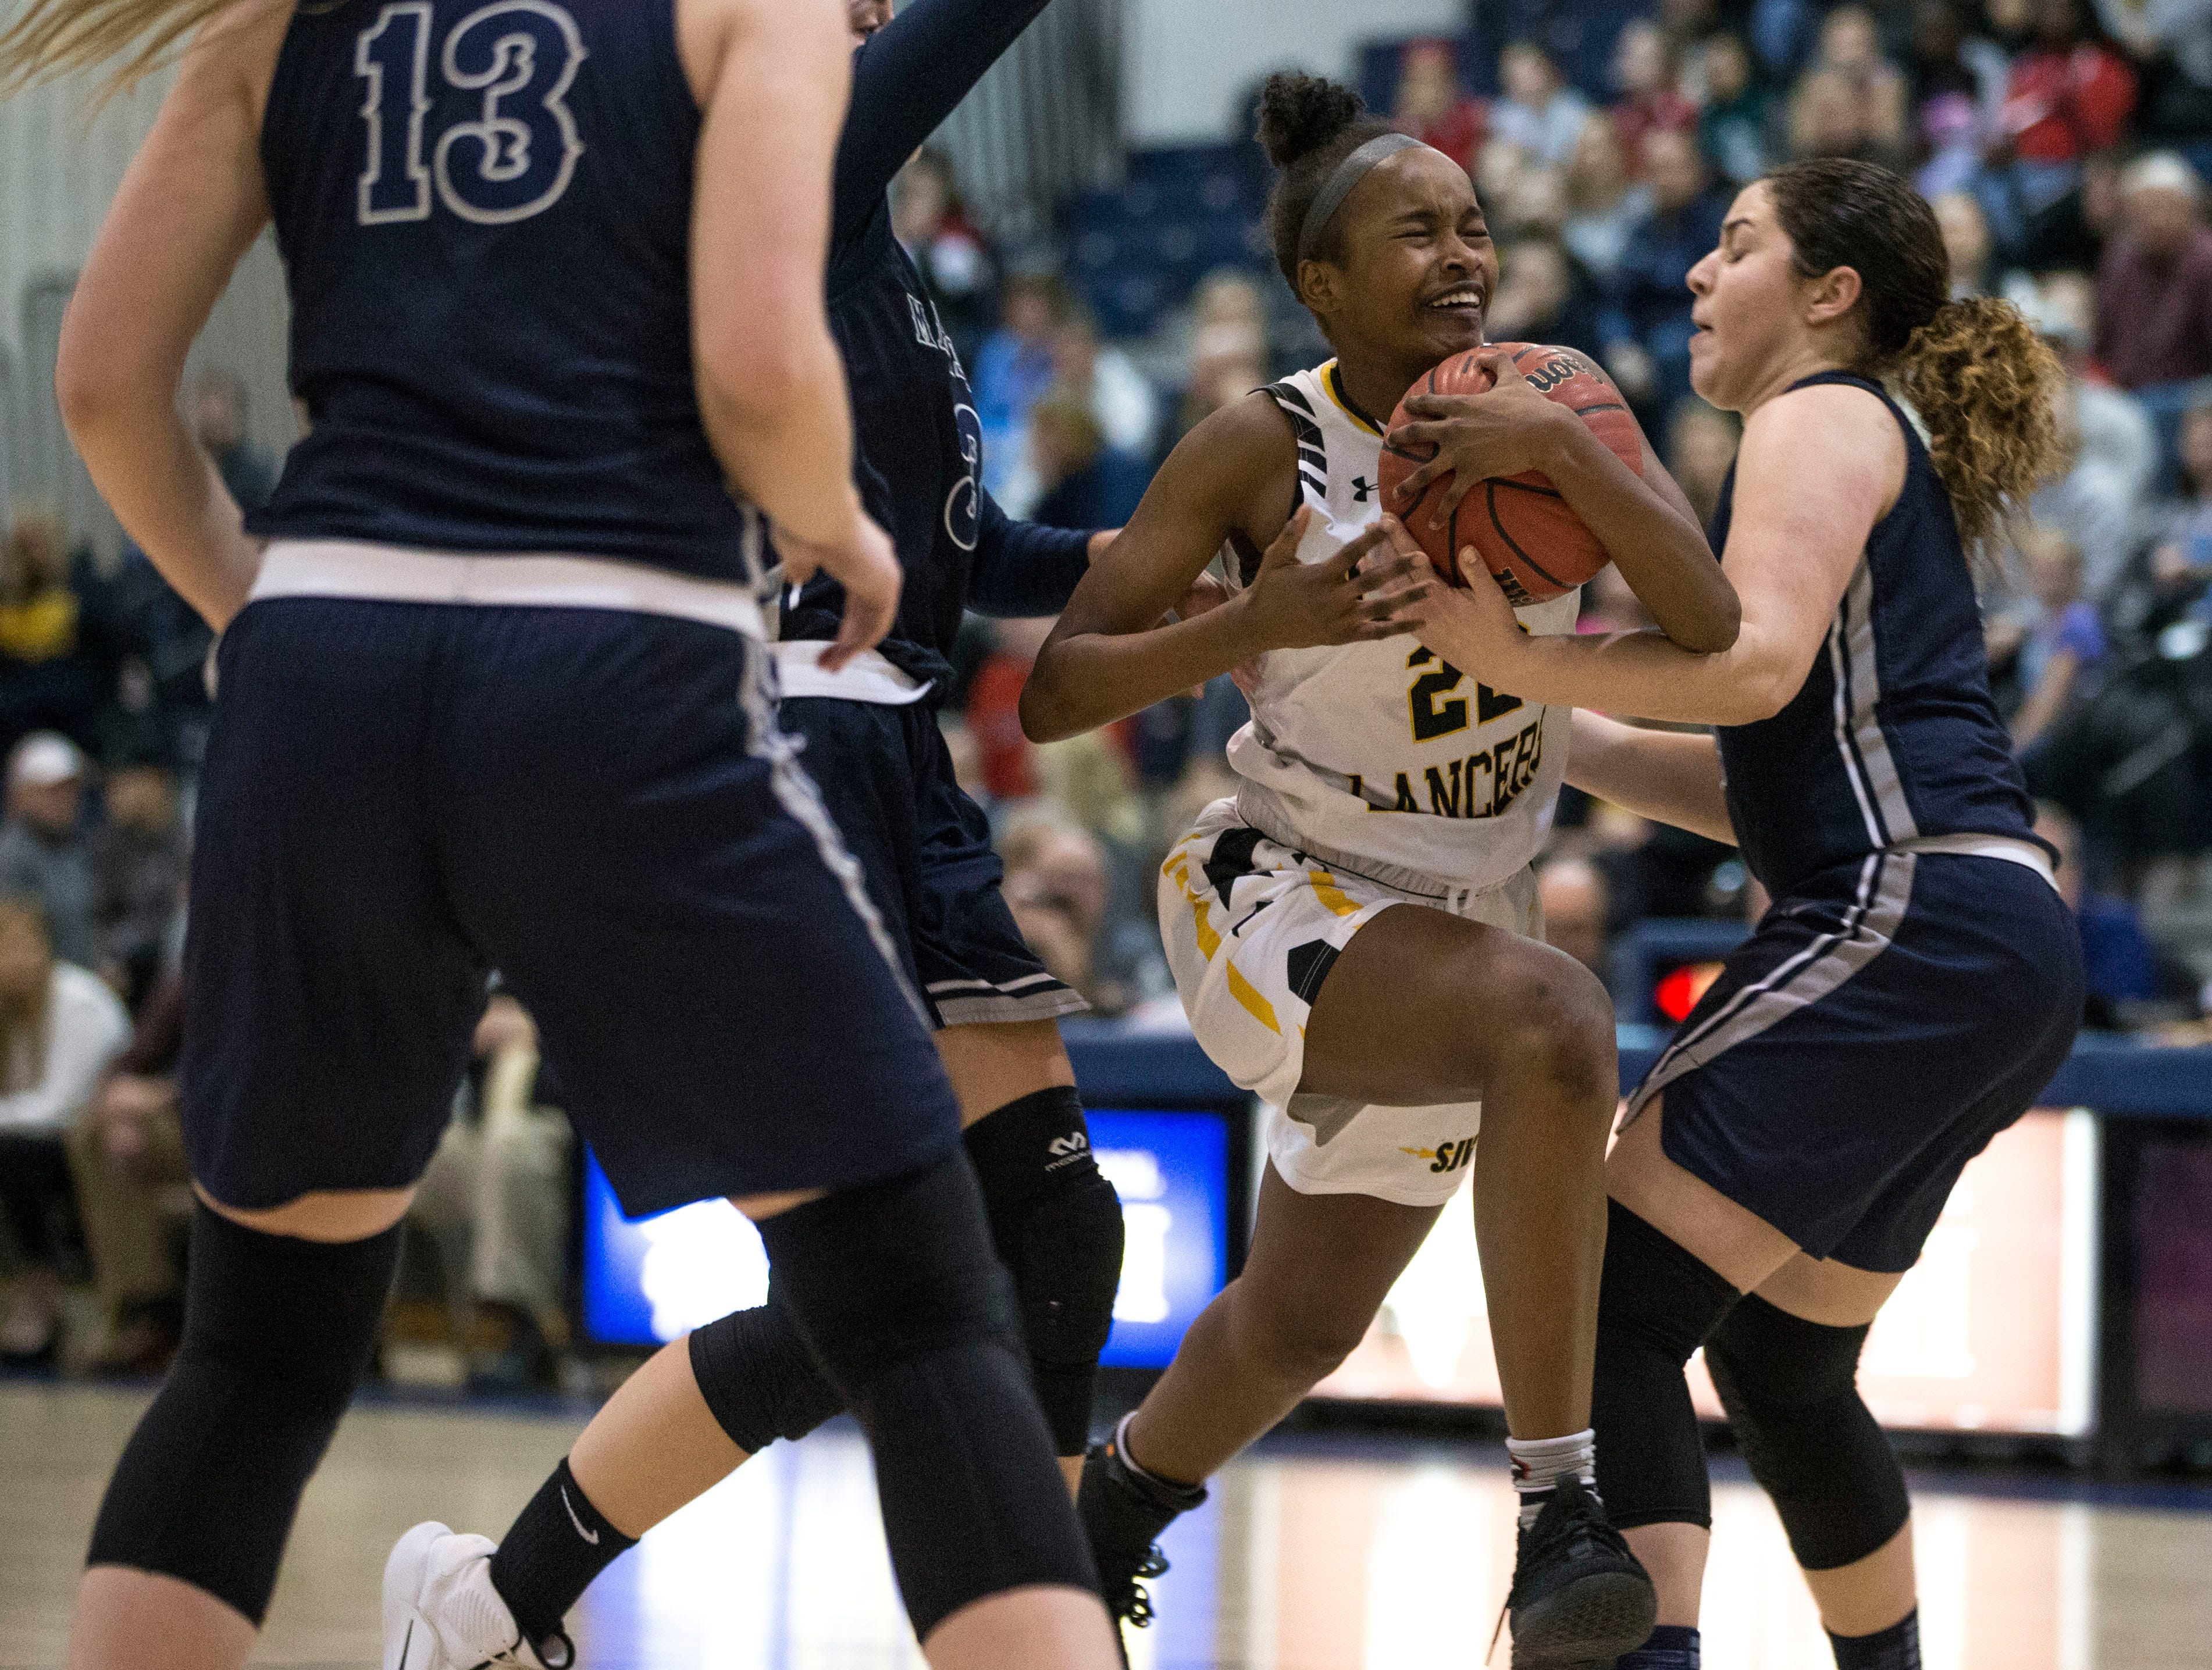 Shore Conference Tournament semifinals featuring Saint John Vianney vs Manasquan. Saint John Vianney's Madison St. Rose drives to the hoop.Toms River, NJTuesday, February 19, 2019